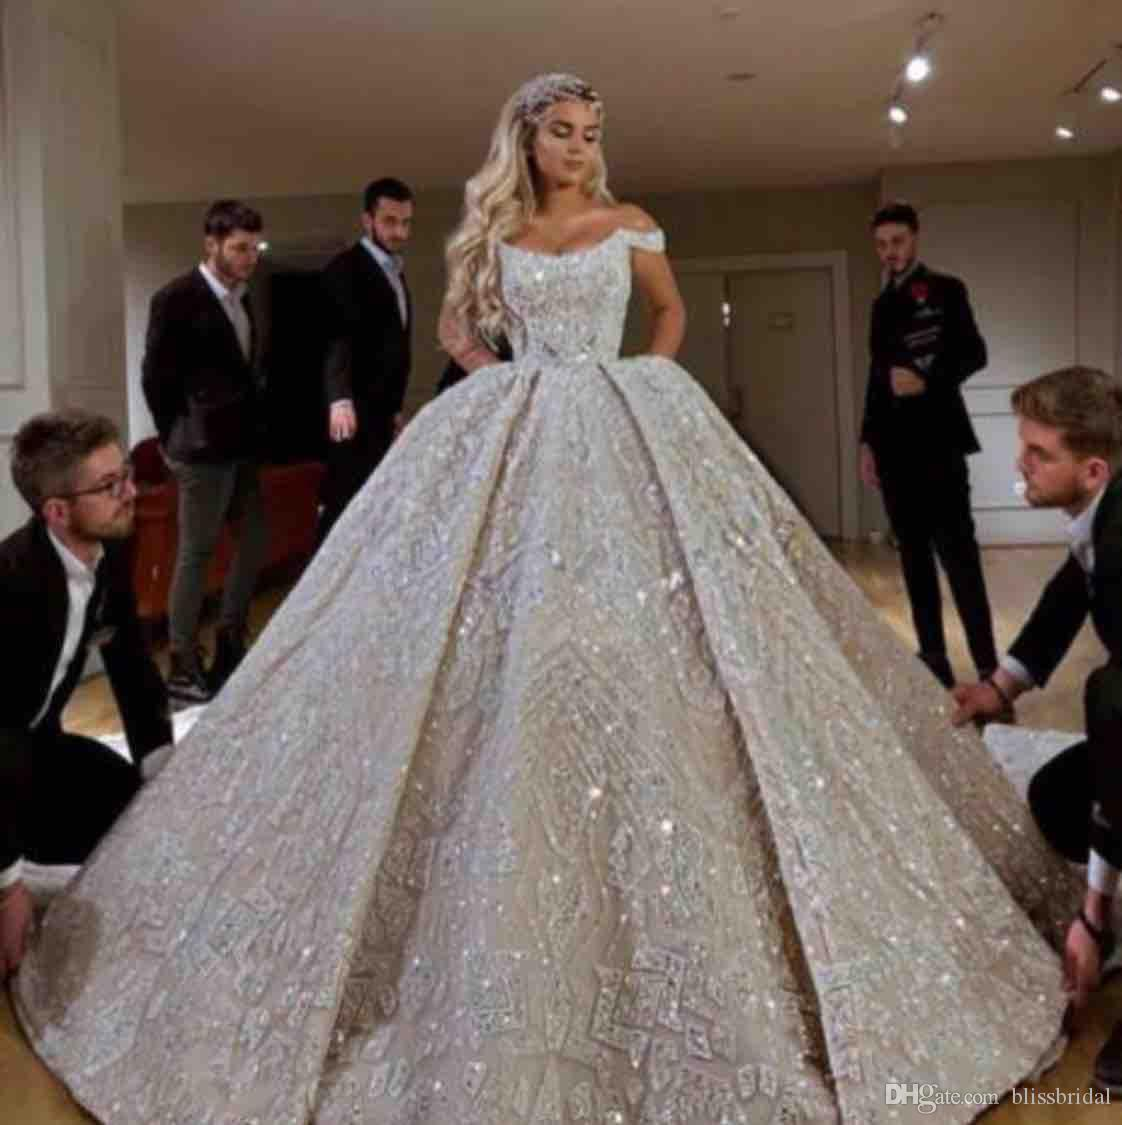 Luxury Ball Gown Wedding Dresses Sequins Applique Off the Shoulder Lace-up Back Floor Length 2019 Bridal Gowns